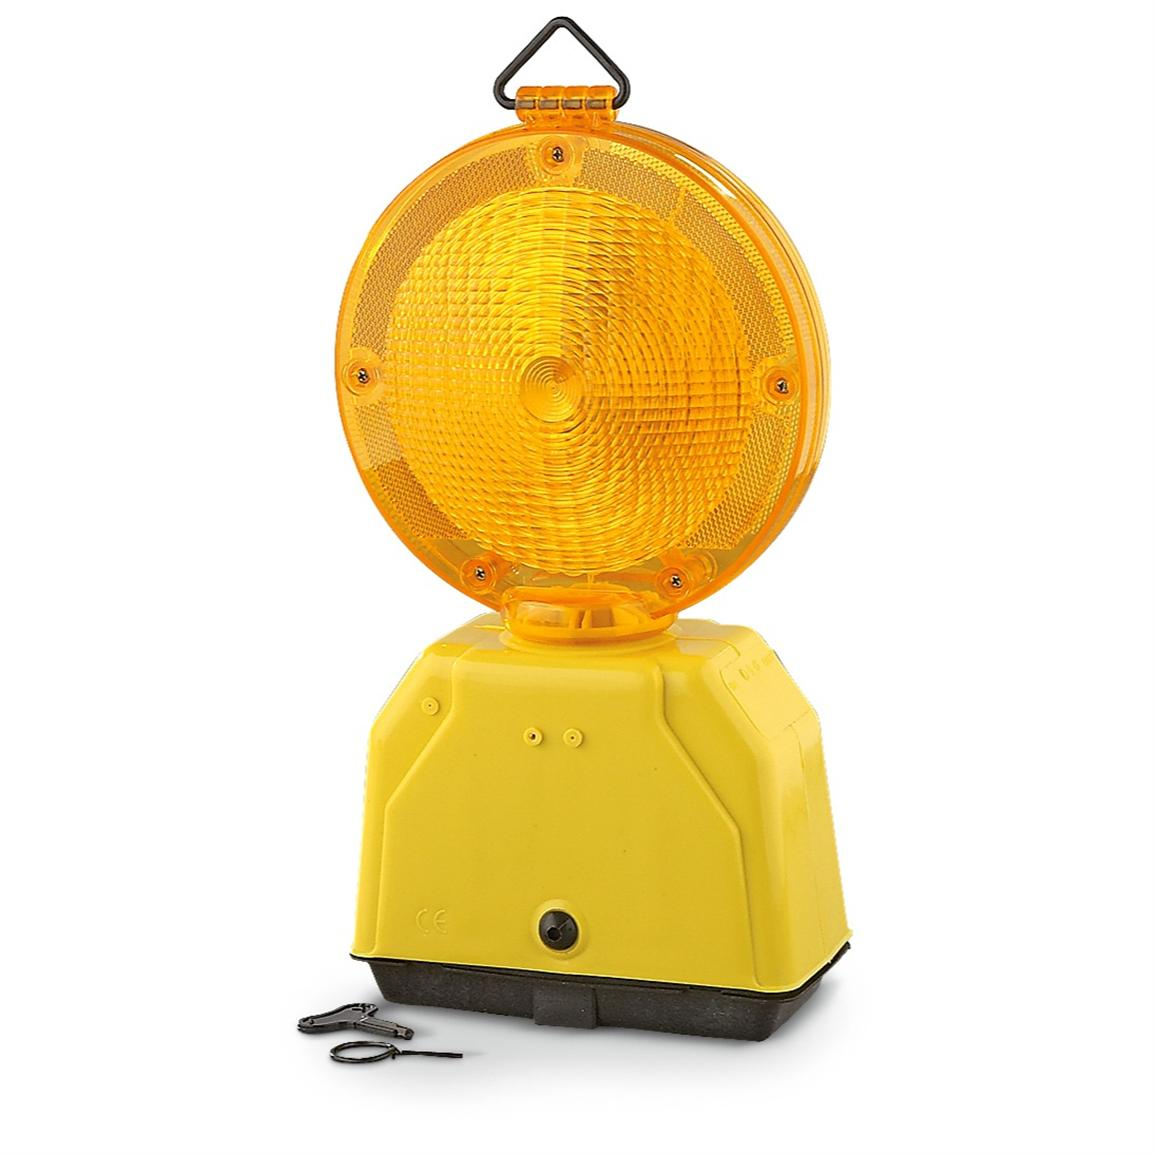 New Swiss Military Surplus Safety Light